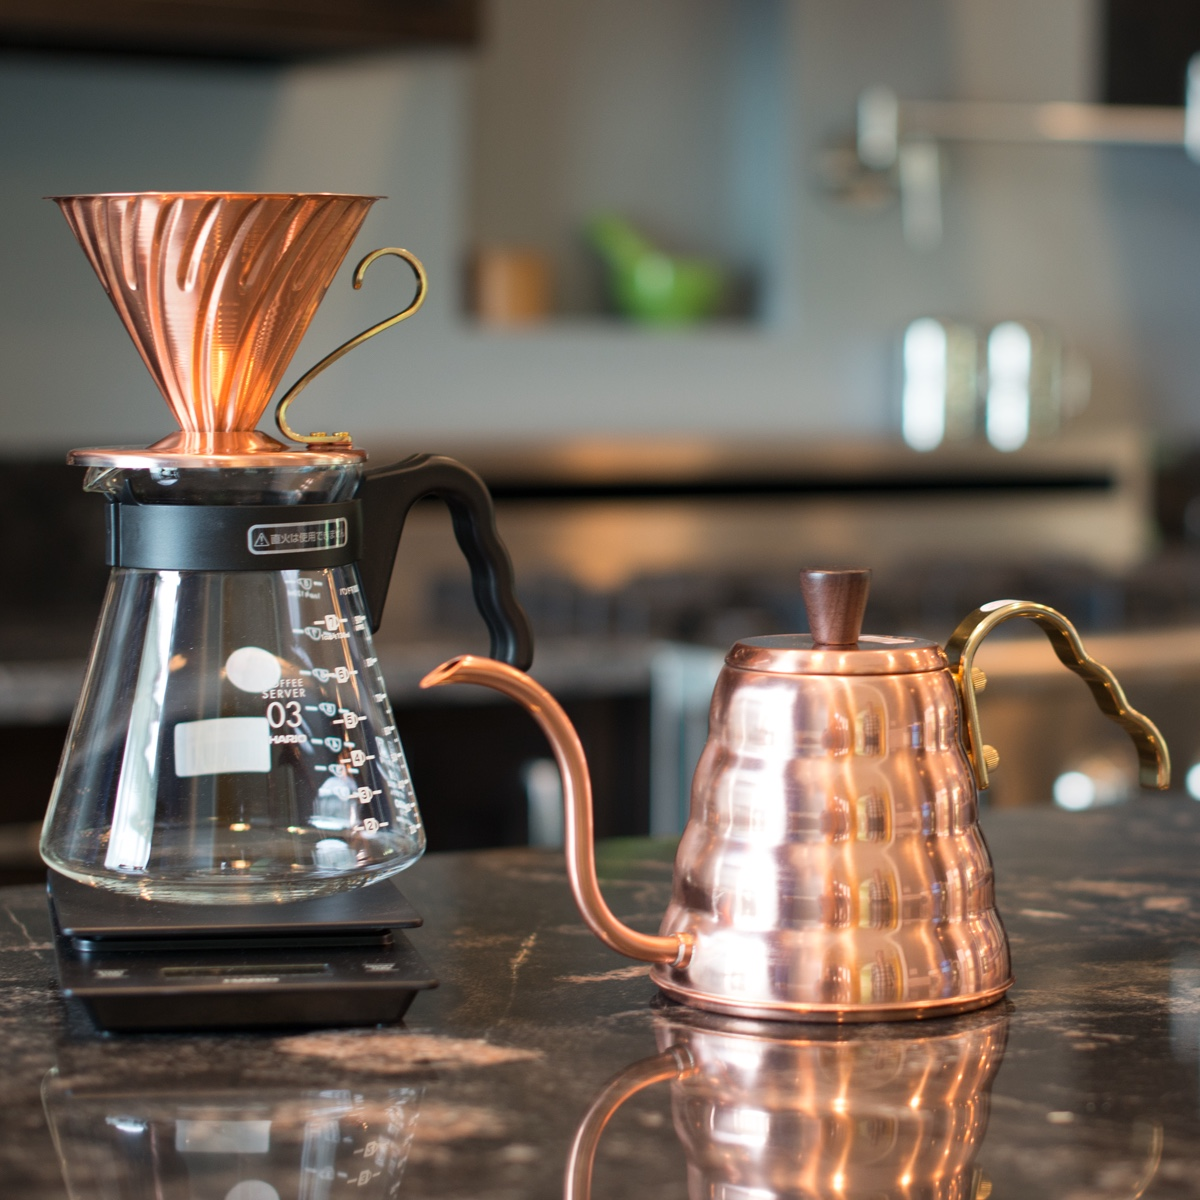 V60 copper kettle and dripper. Image via Prima Coffee Equipment.